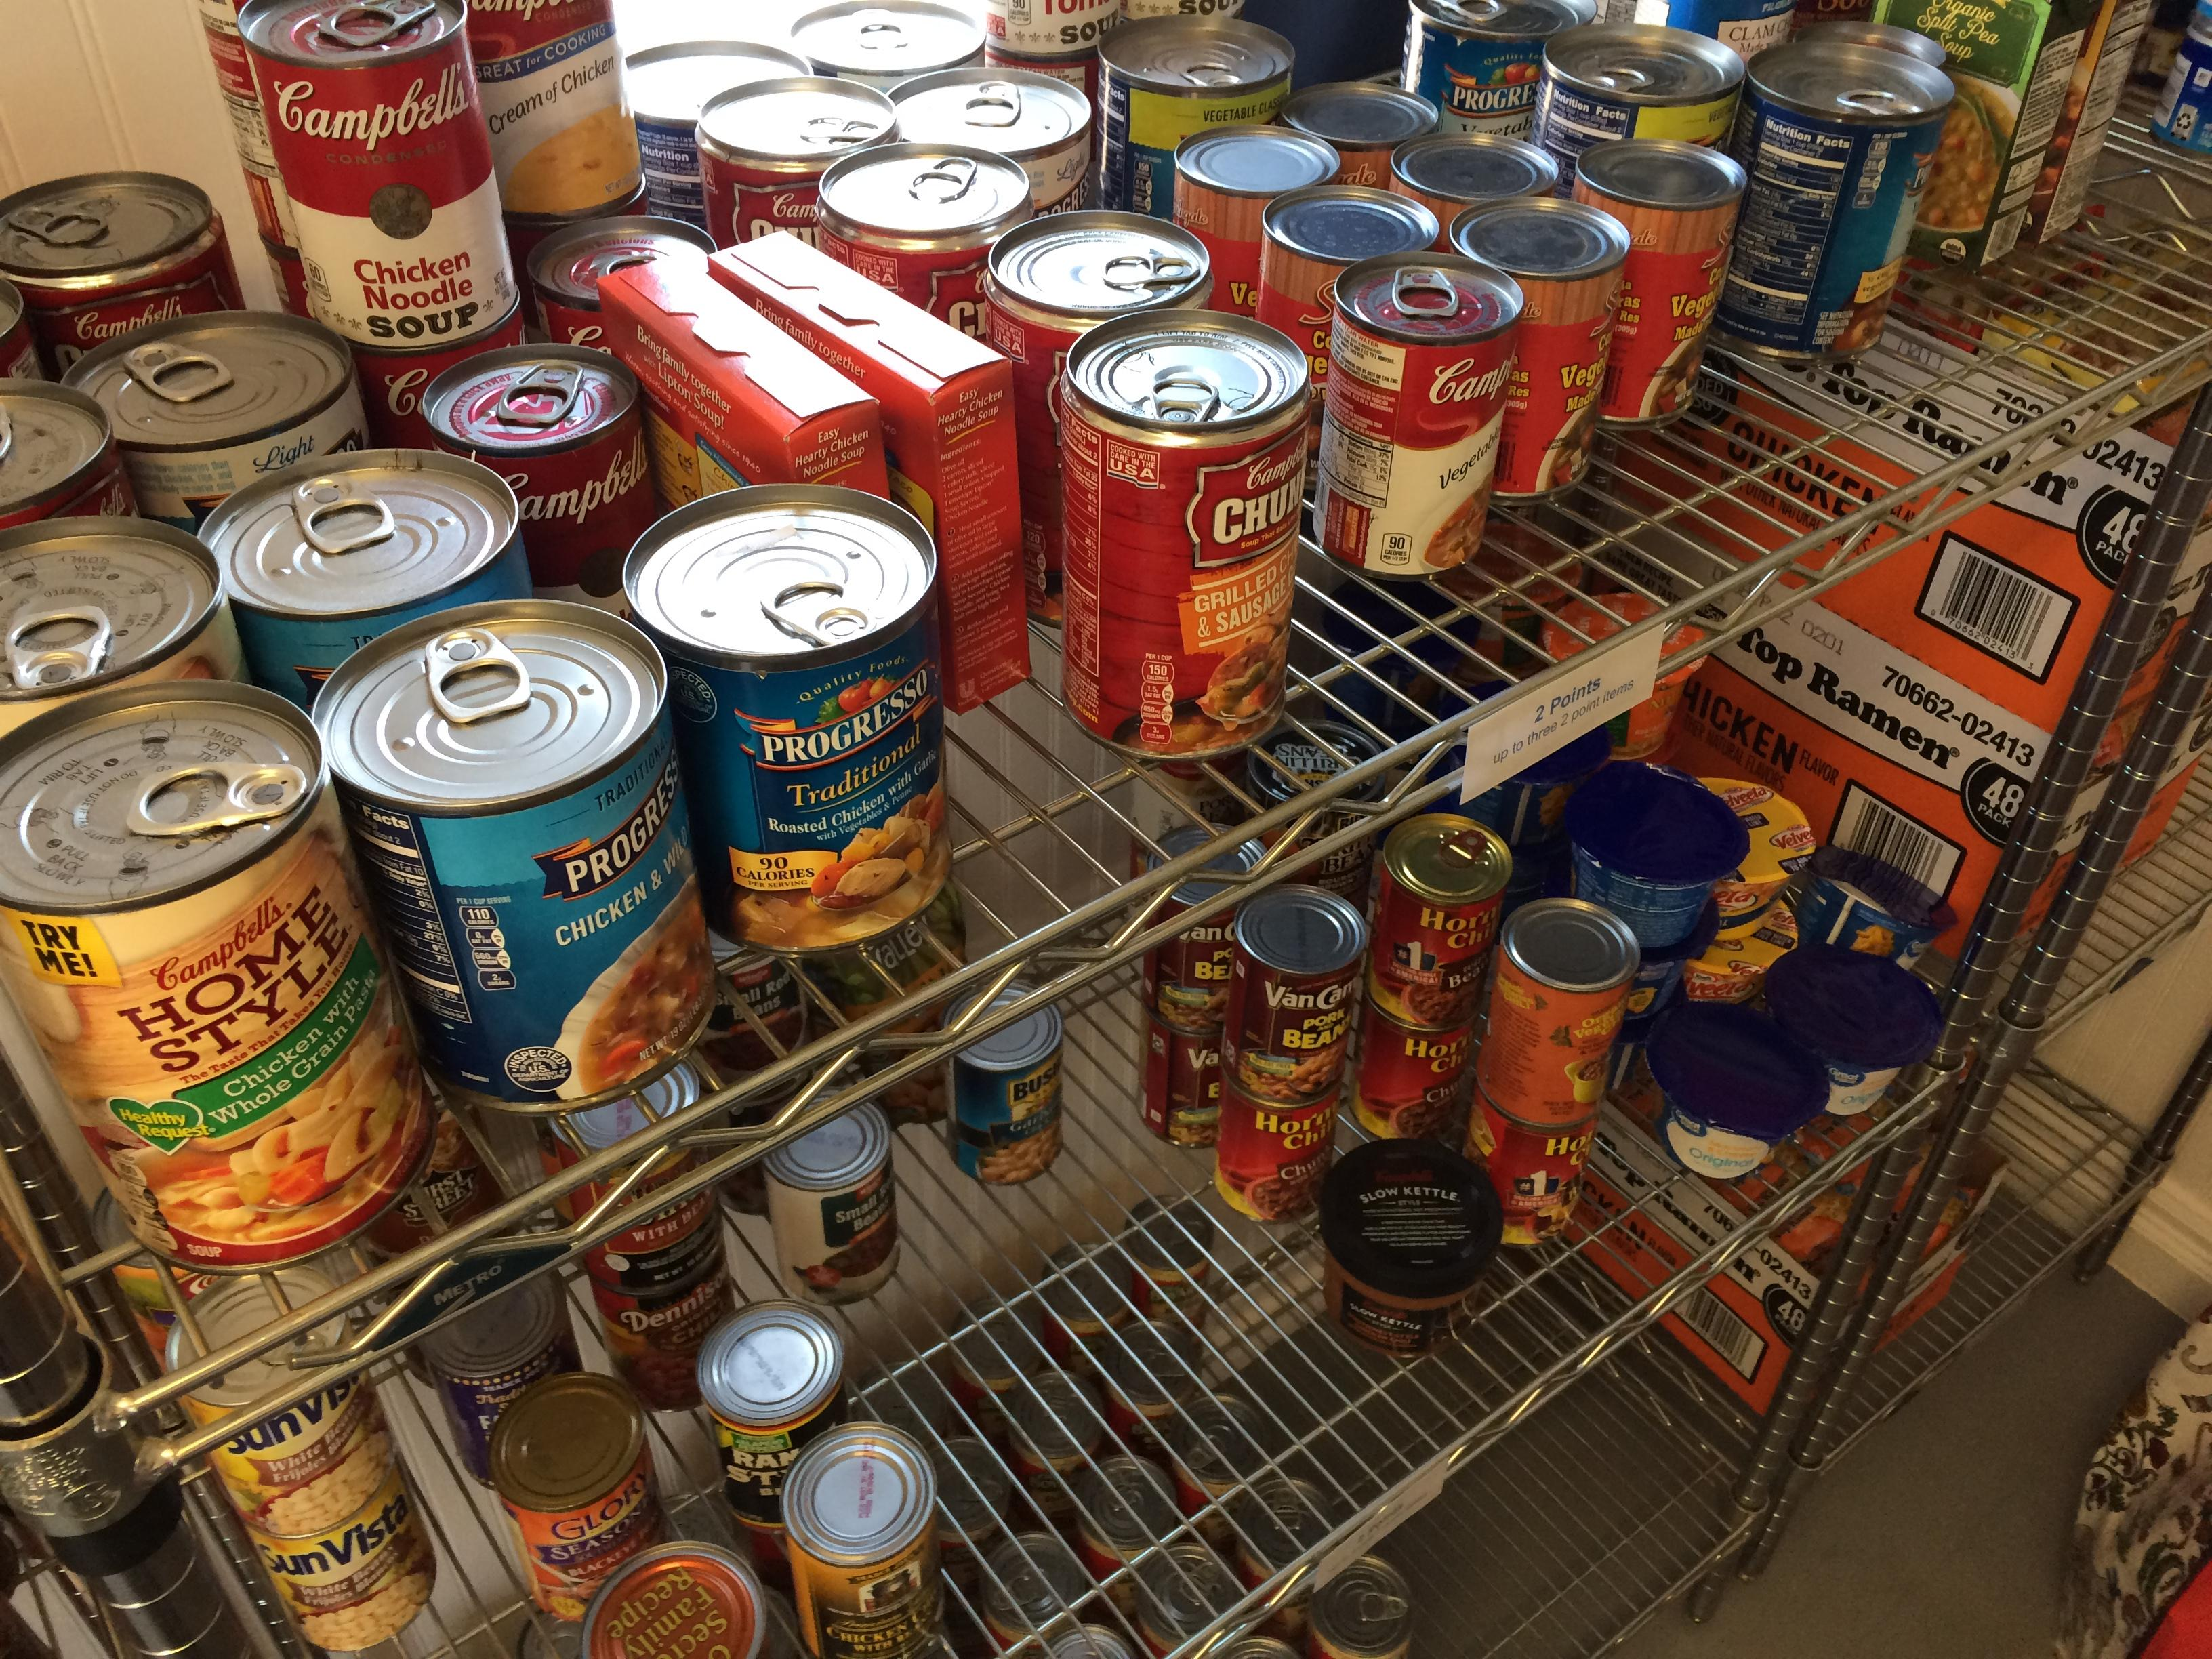 California State University, Bakersfield debuts its food pantry for students and staff who may experience food insecurity, Monday, Sept. 18, 2017. (KBAK/KBFX photo/Octavio Flores)